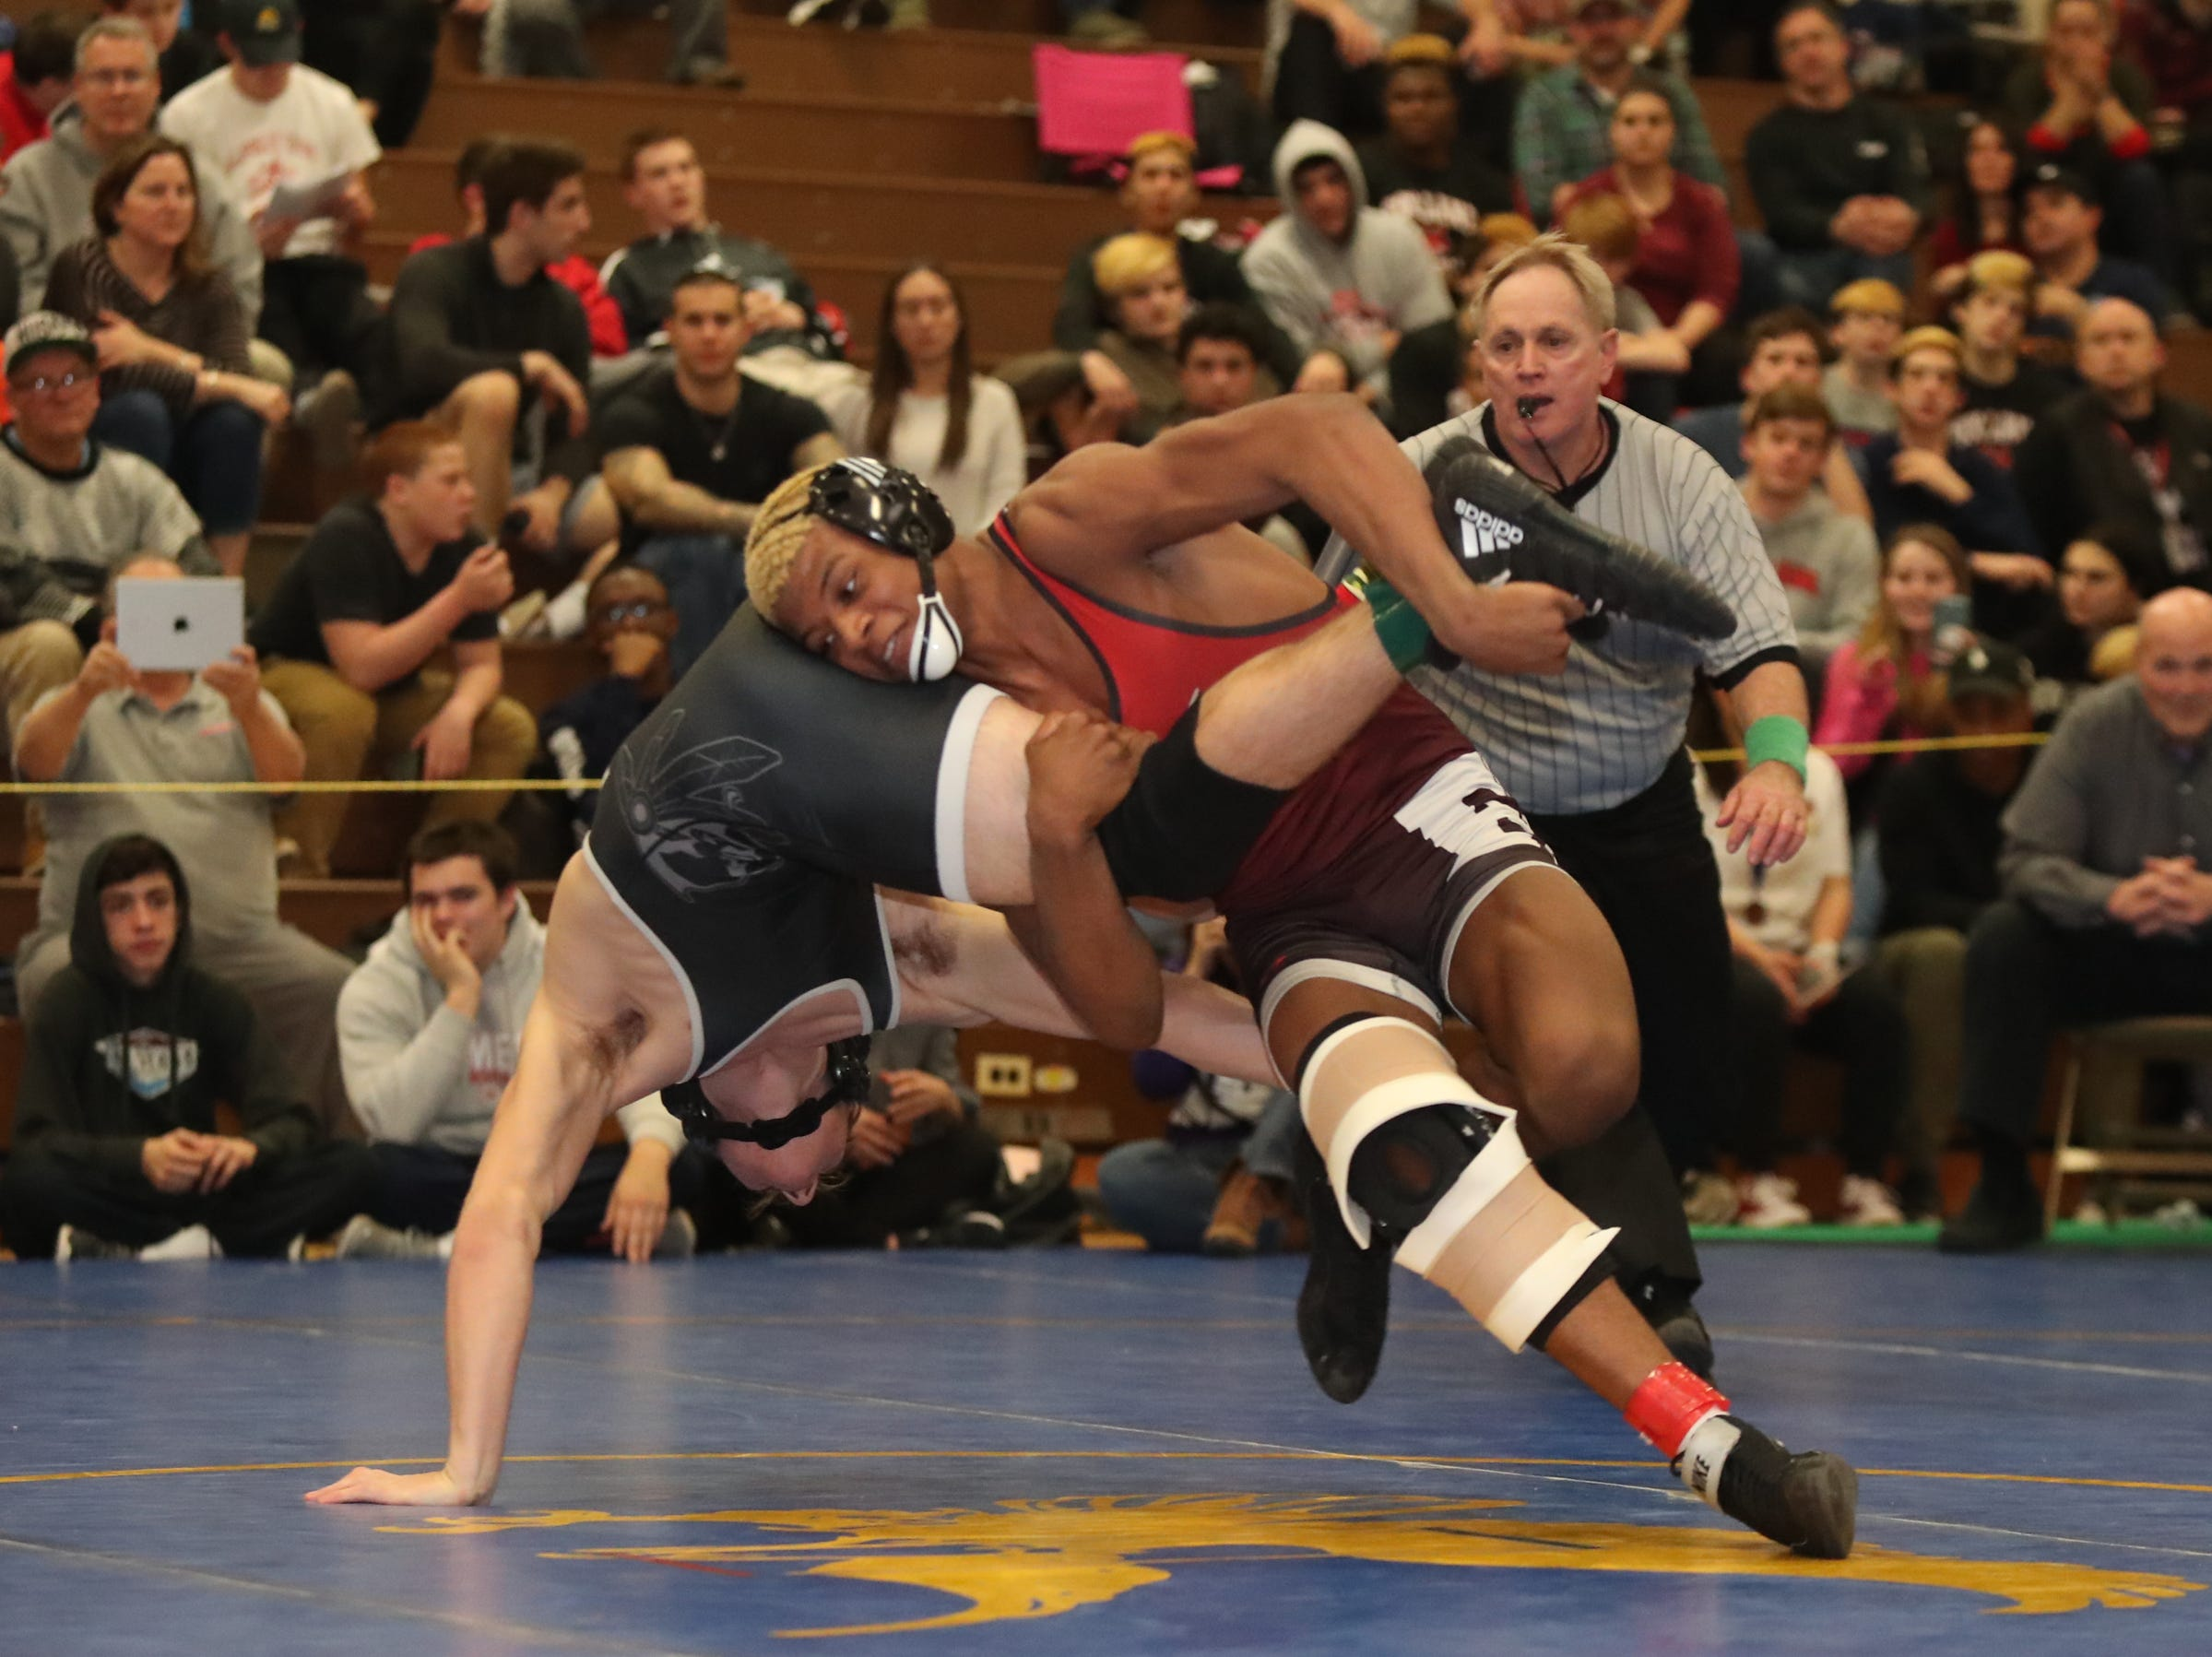 Fox Lane's Quincy Downes defeats John Jay-Cross River's Galvin Fiaco in the 160-pound match of the division I wrestling finals at Clarkstown South High School on Sunday, February 10, 2019.